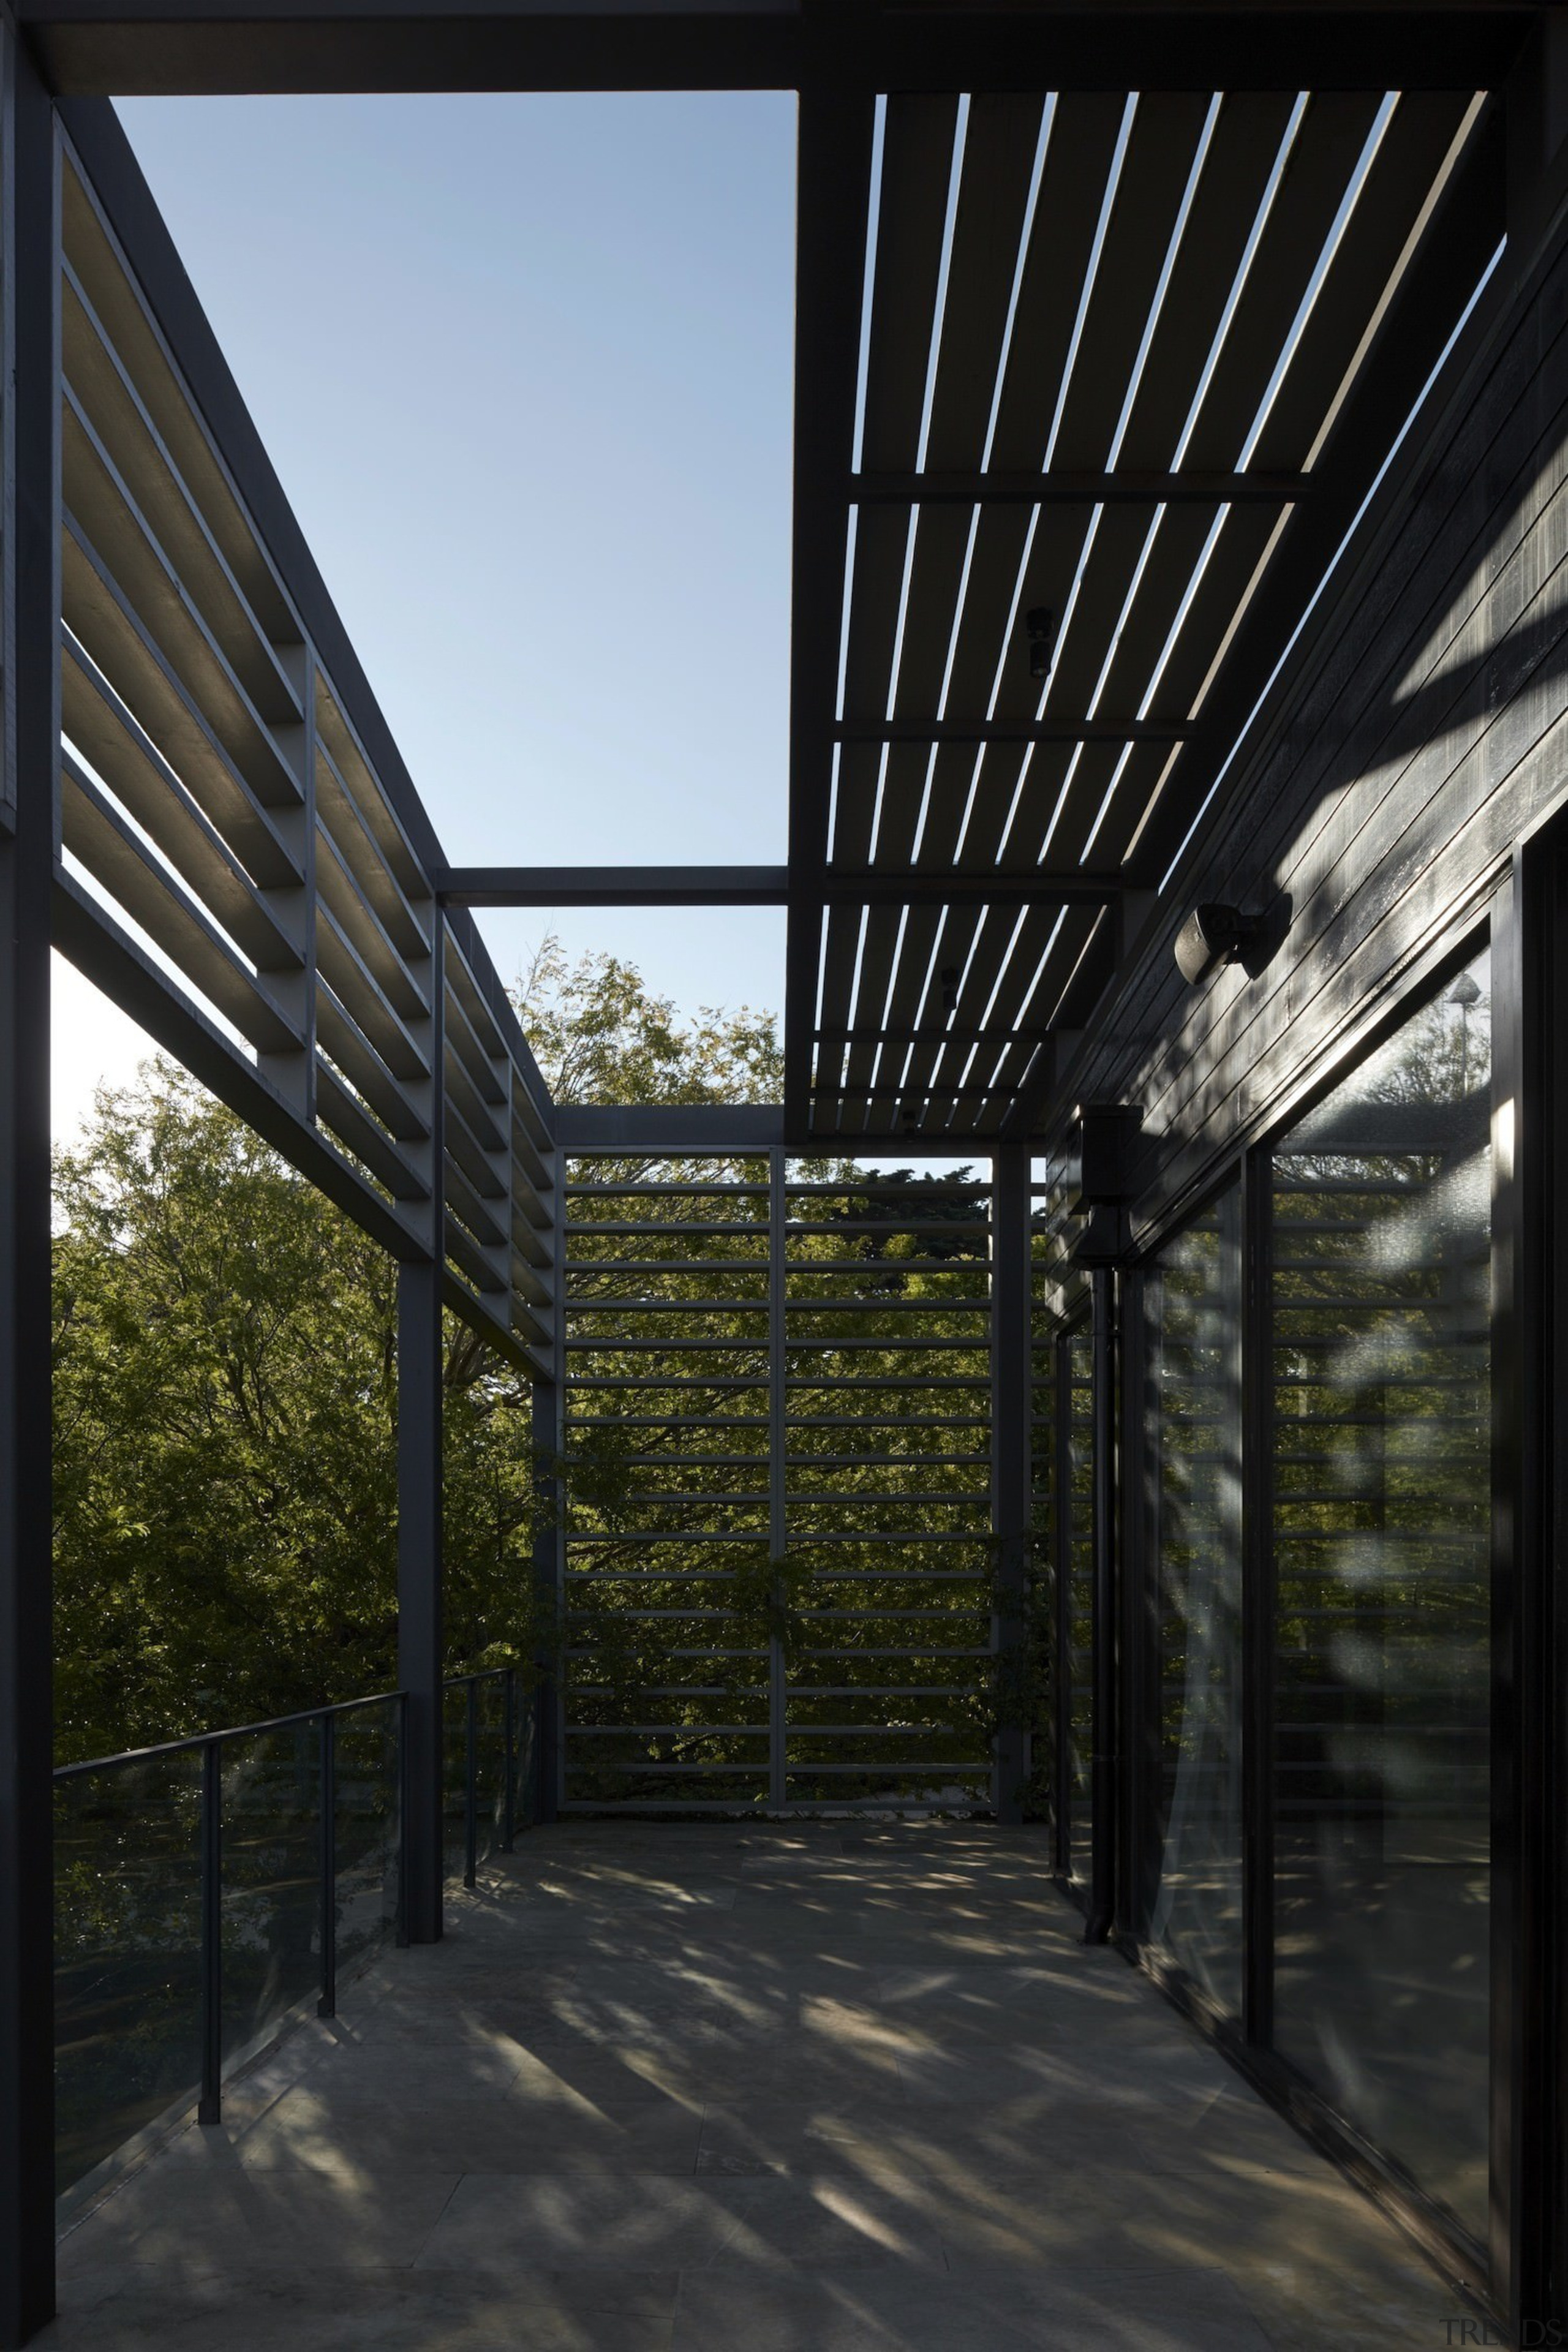 Architect: B.E Architecture architecture, daylighting, house, outdoor structure, roof, sky, structure, black